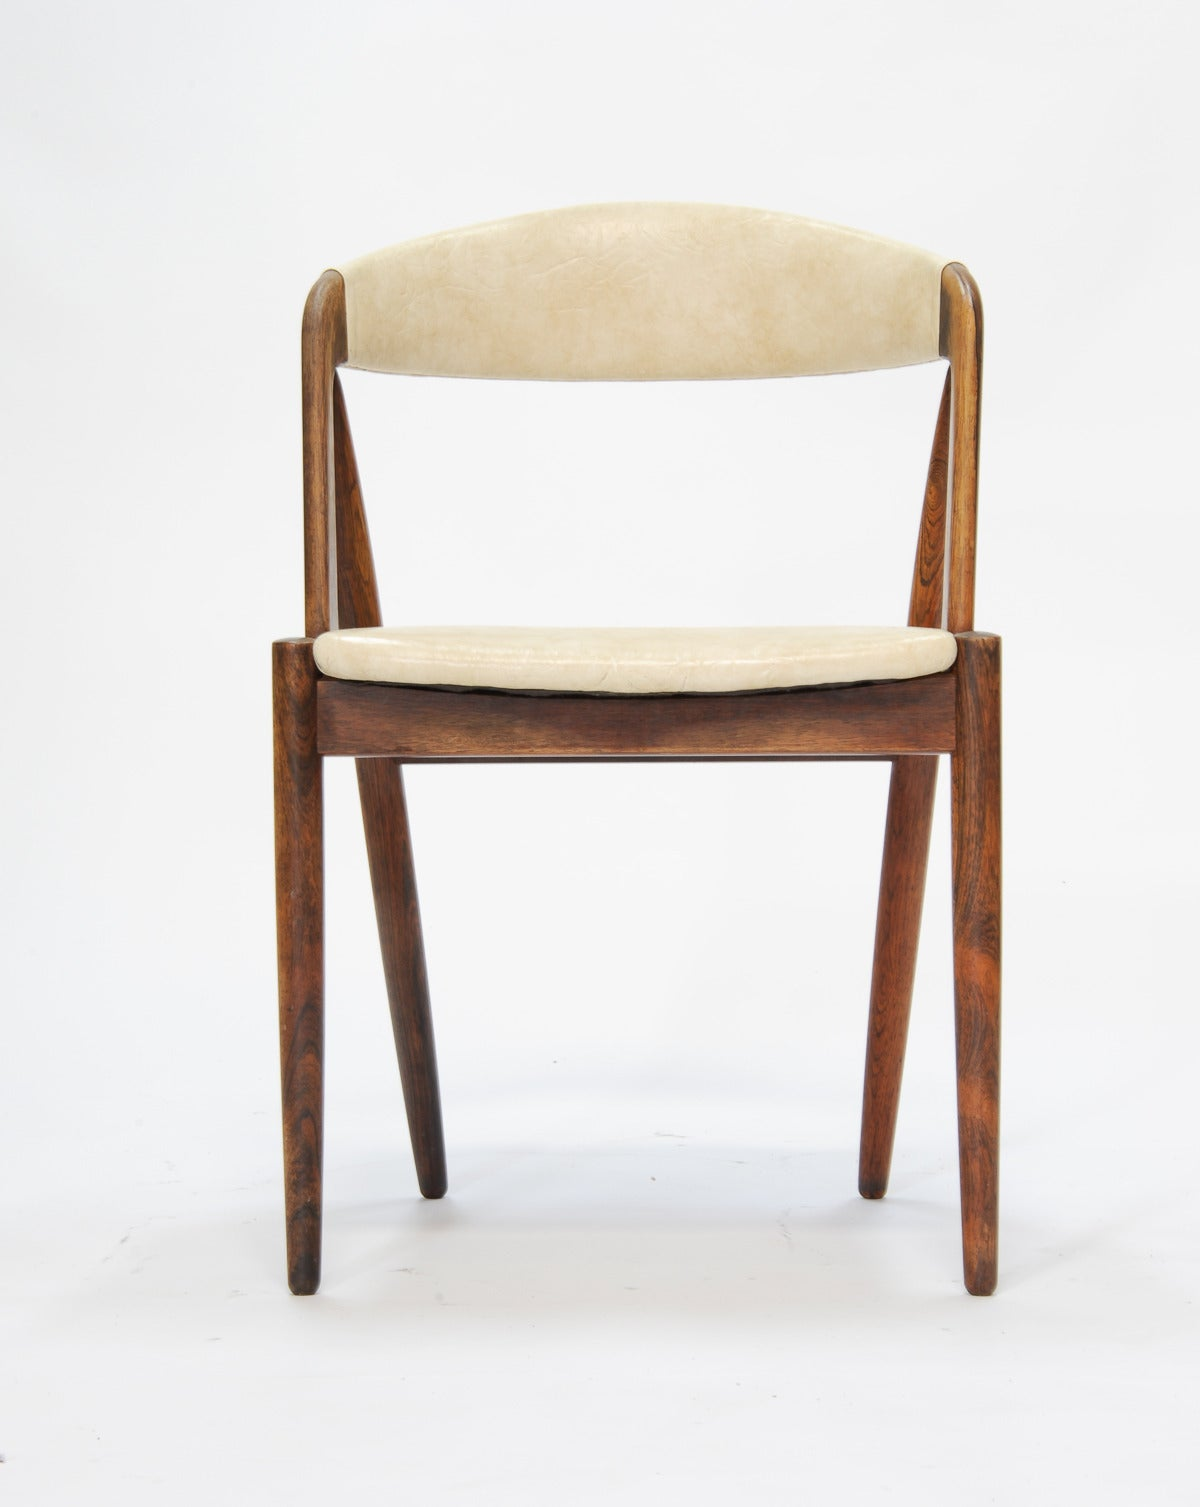 Set of four rosewood kai kristiansen dining chairs at 1stdibs - Kai kristiansen chairs ...